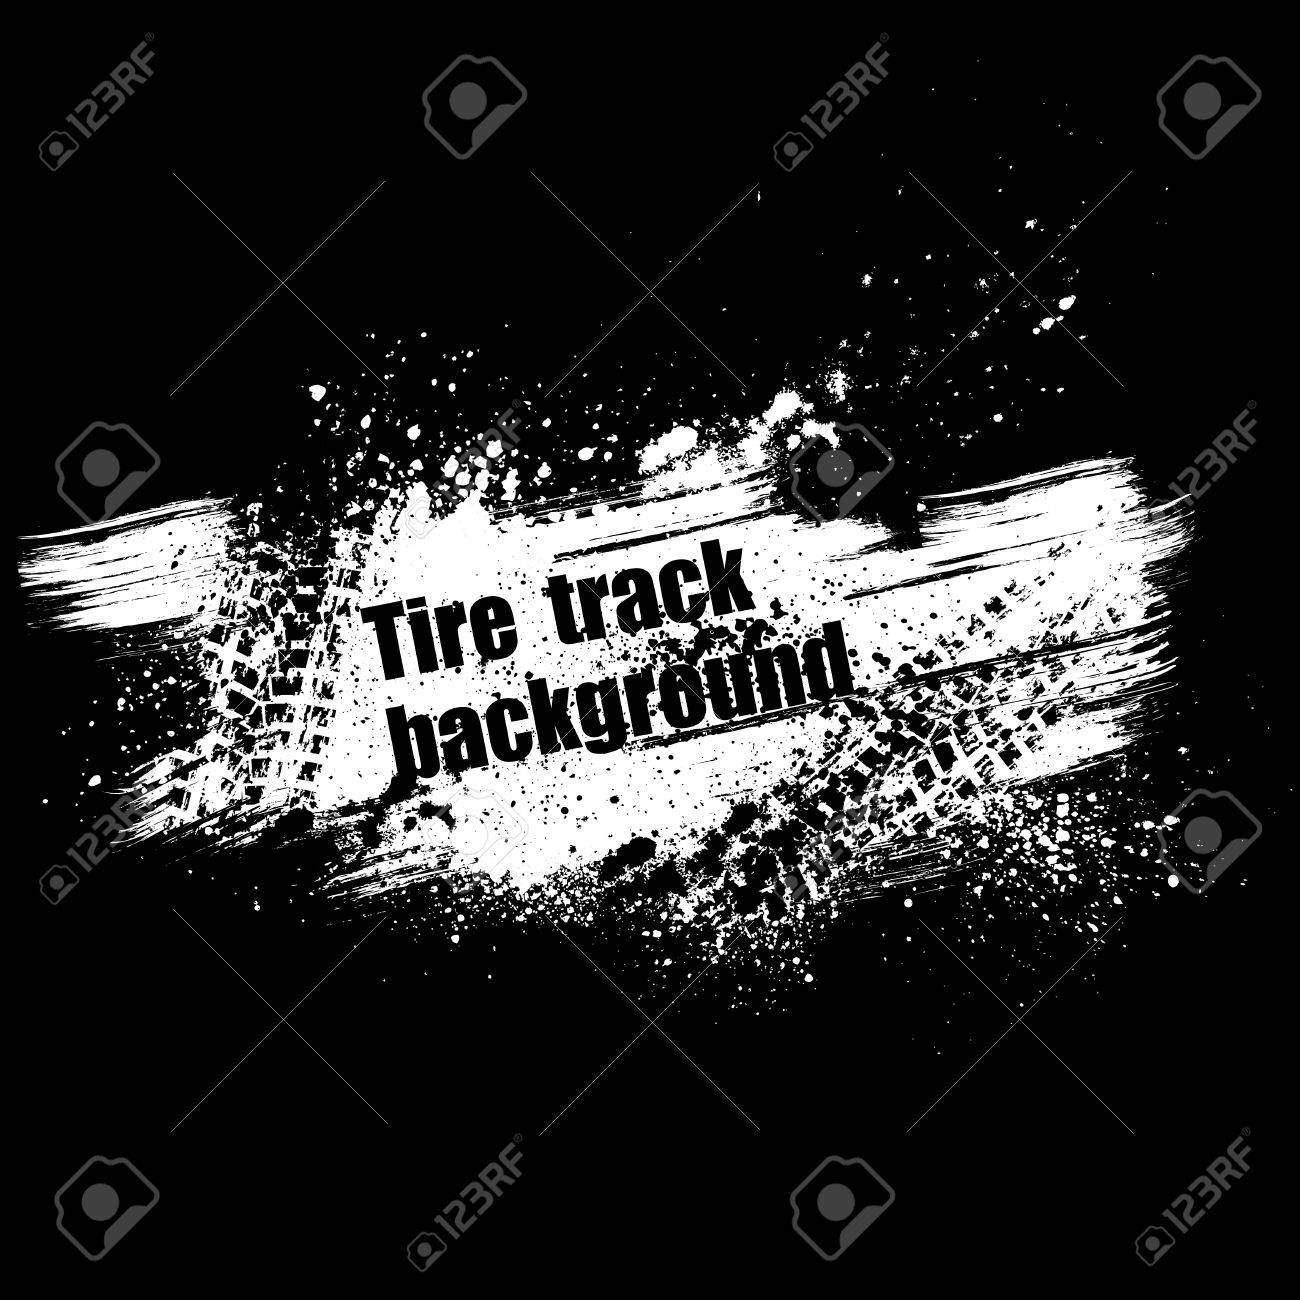 Black background with tire track and grunge splash. - 23979275